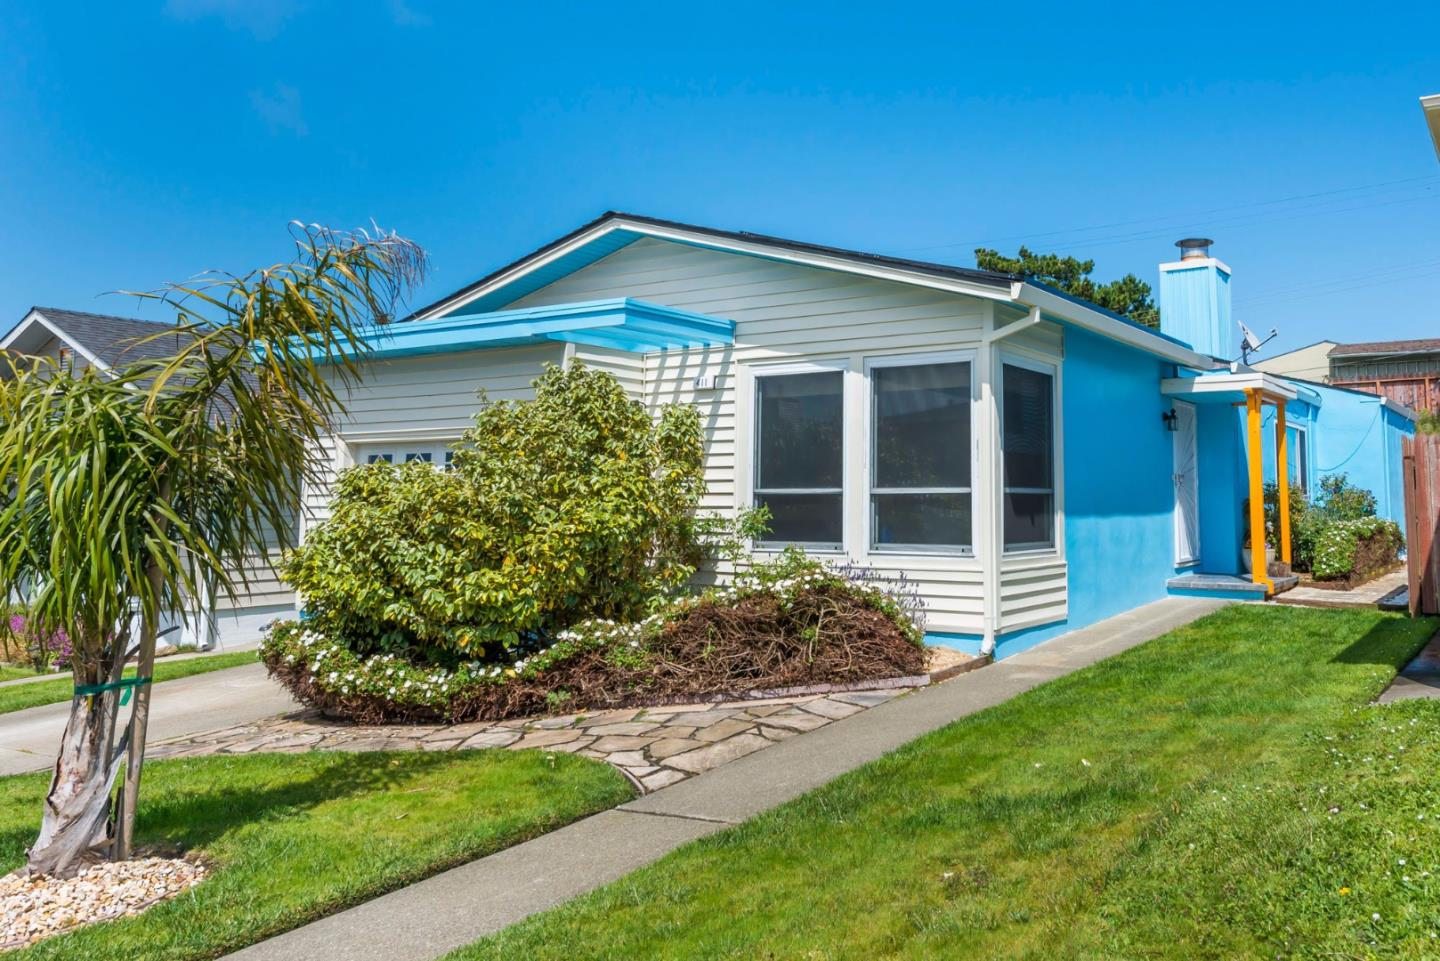 411 Firecrest Ave Pacifica Ca 94044 Mls 81647706